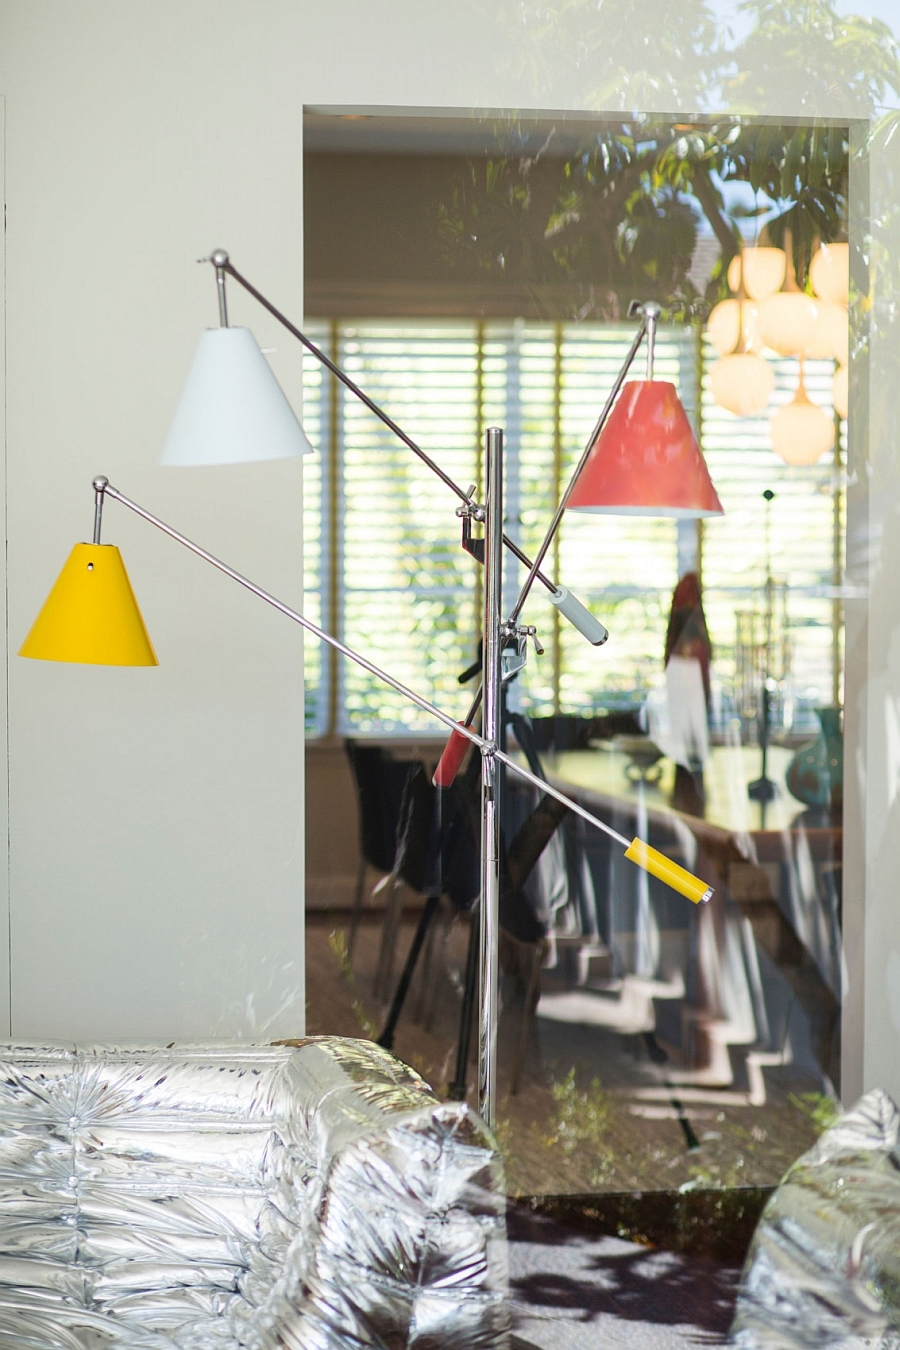 Versatile floor lamp with adjustable lamps makes for a practical and colorful addition